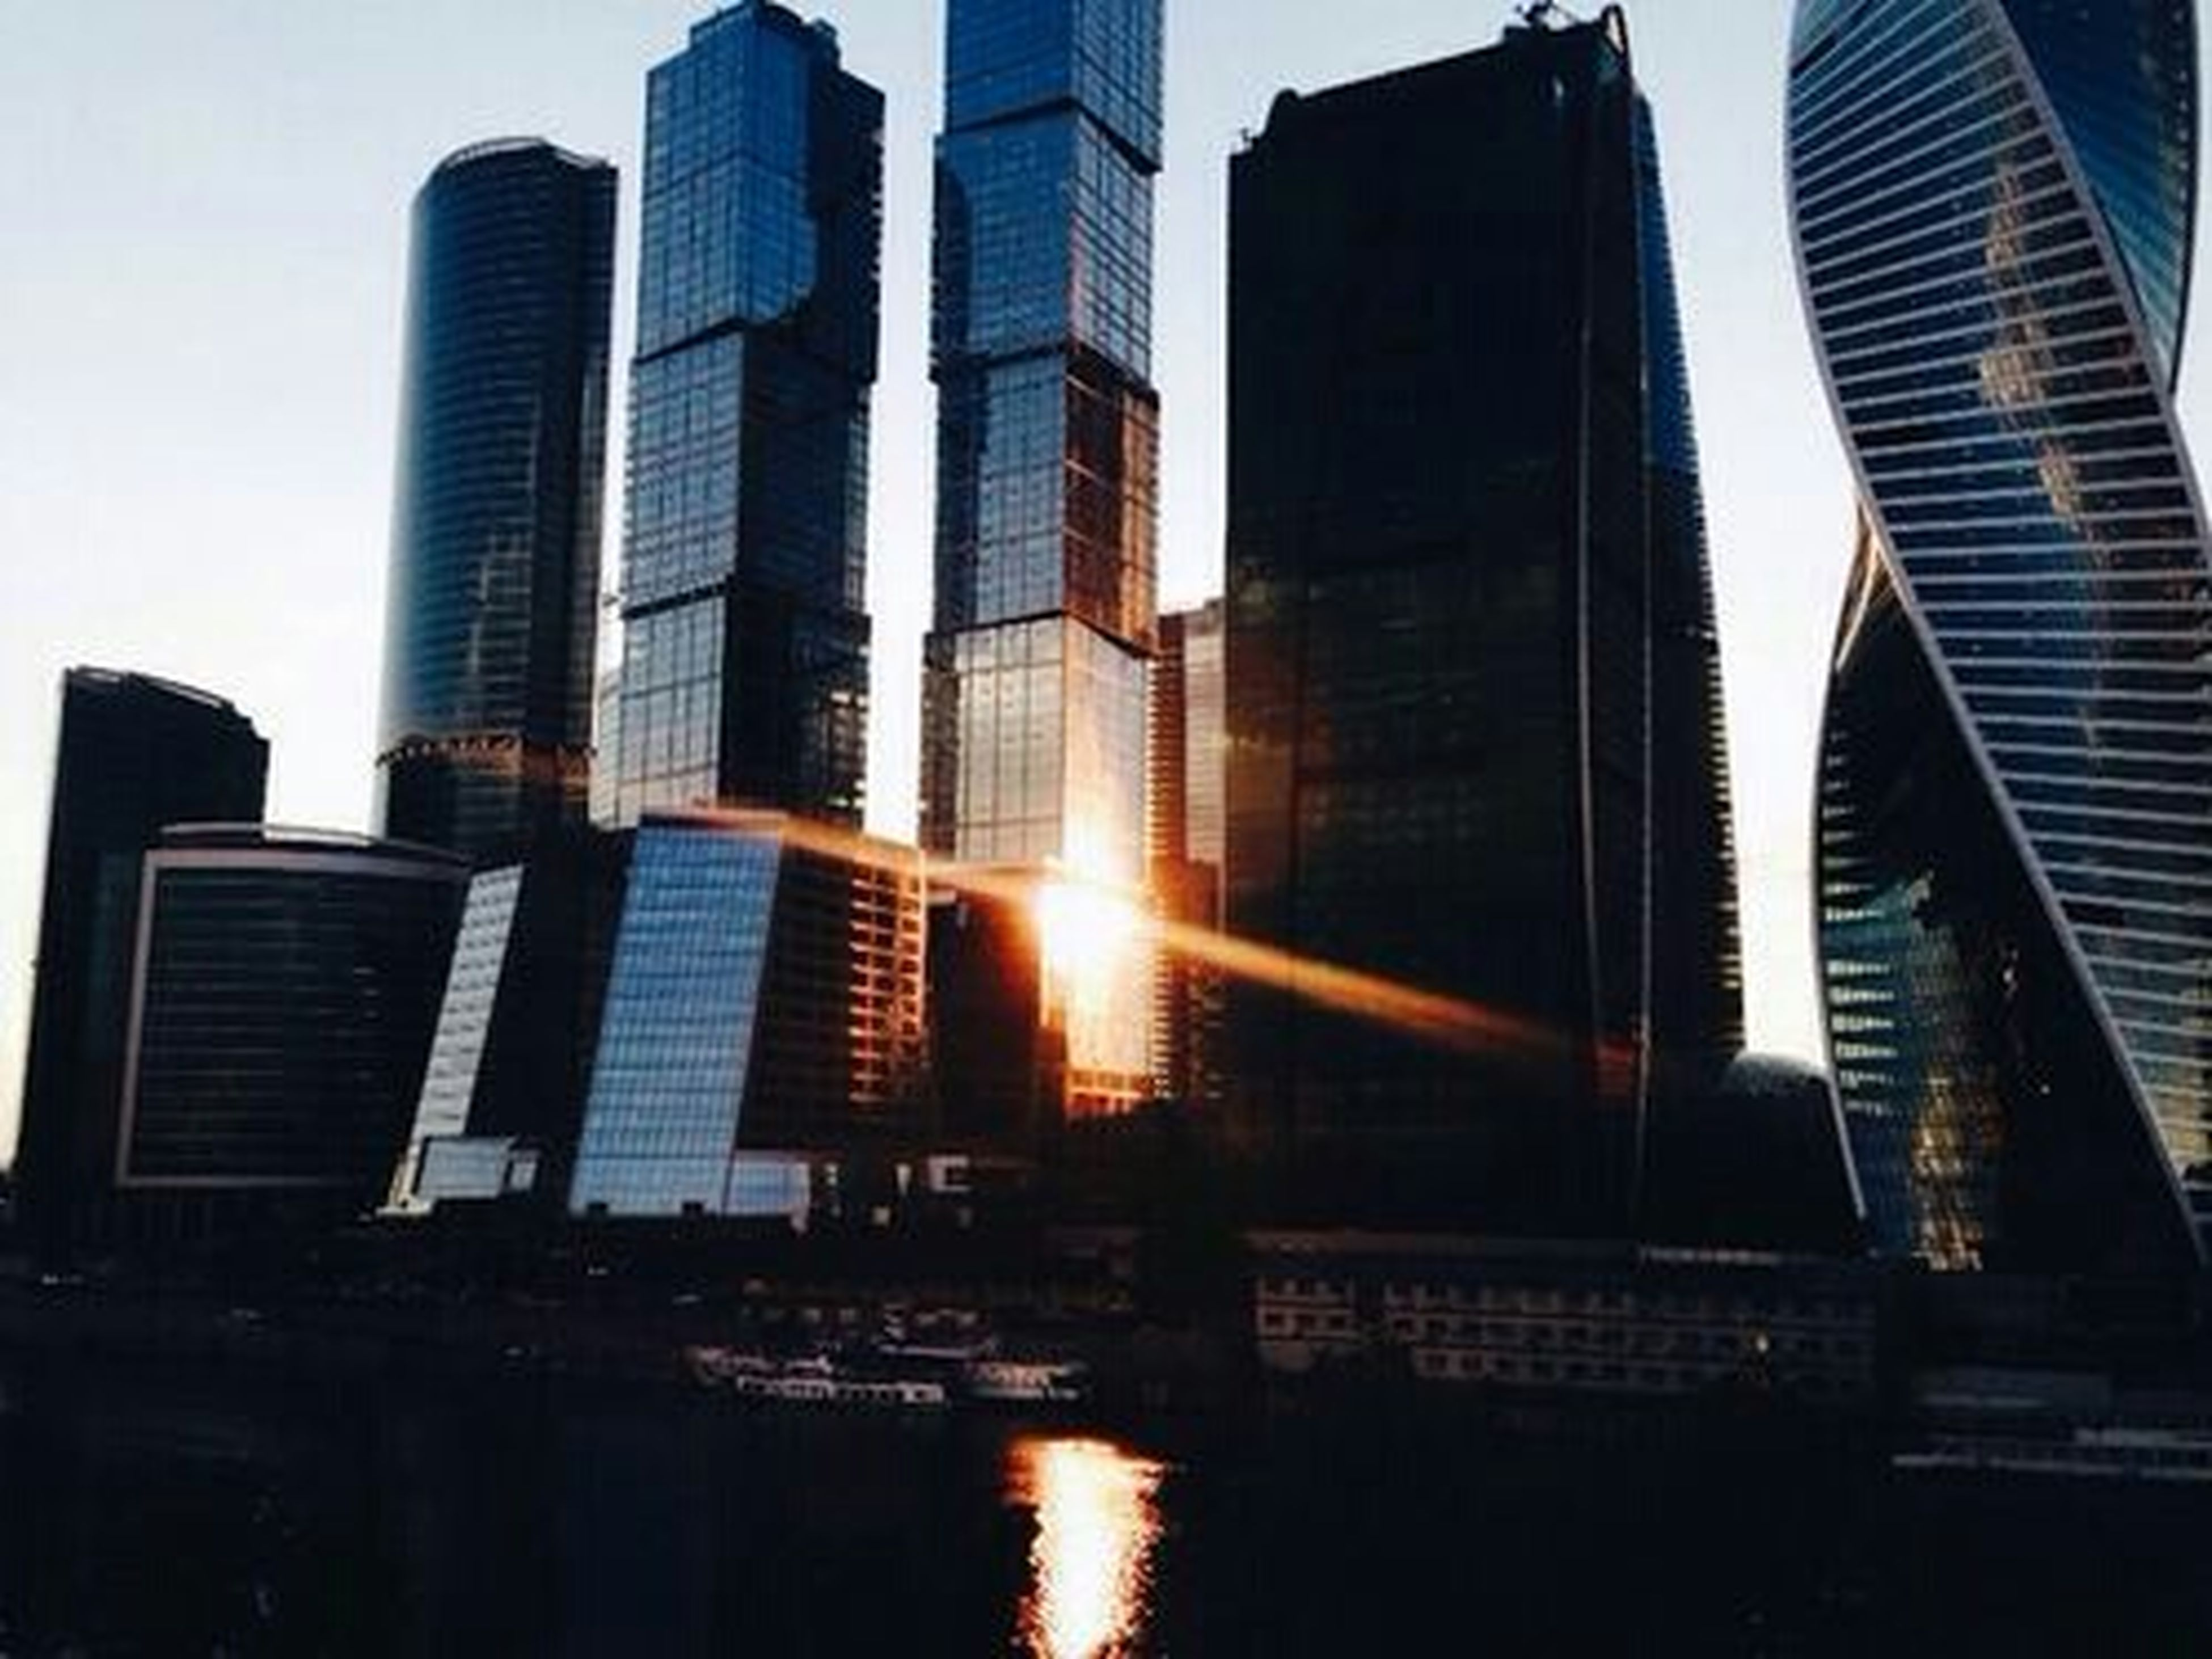 architecture, building exterior, built structure, city, reflection, skyscraper, modern, office building, building, water, sky, tall - high, sunlight, tower, waterfront, low angle view, sun, glass - material, sunset, river